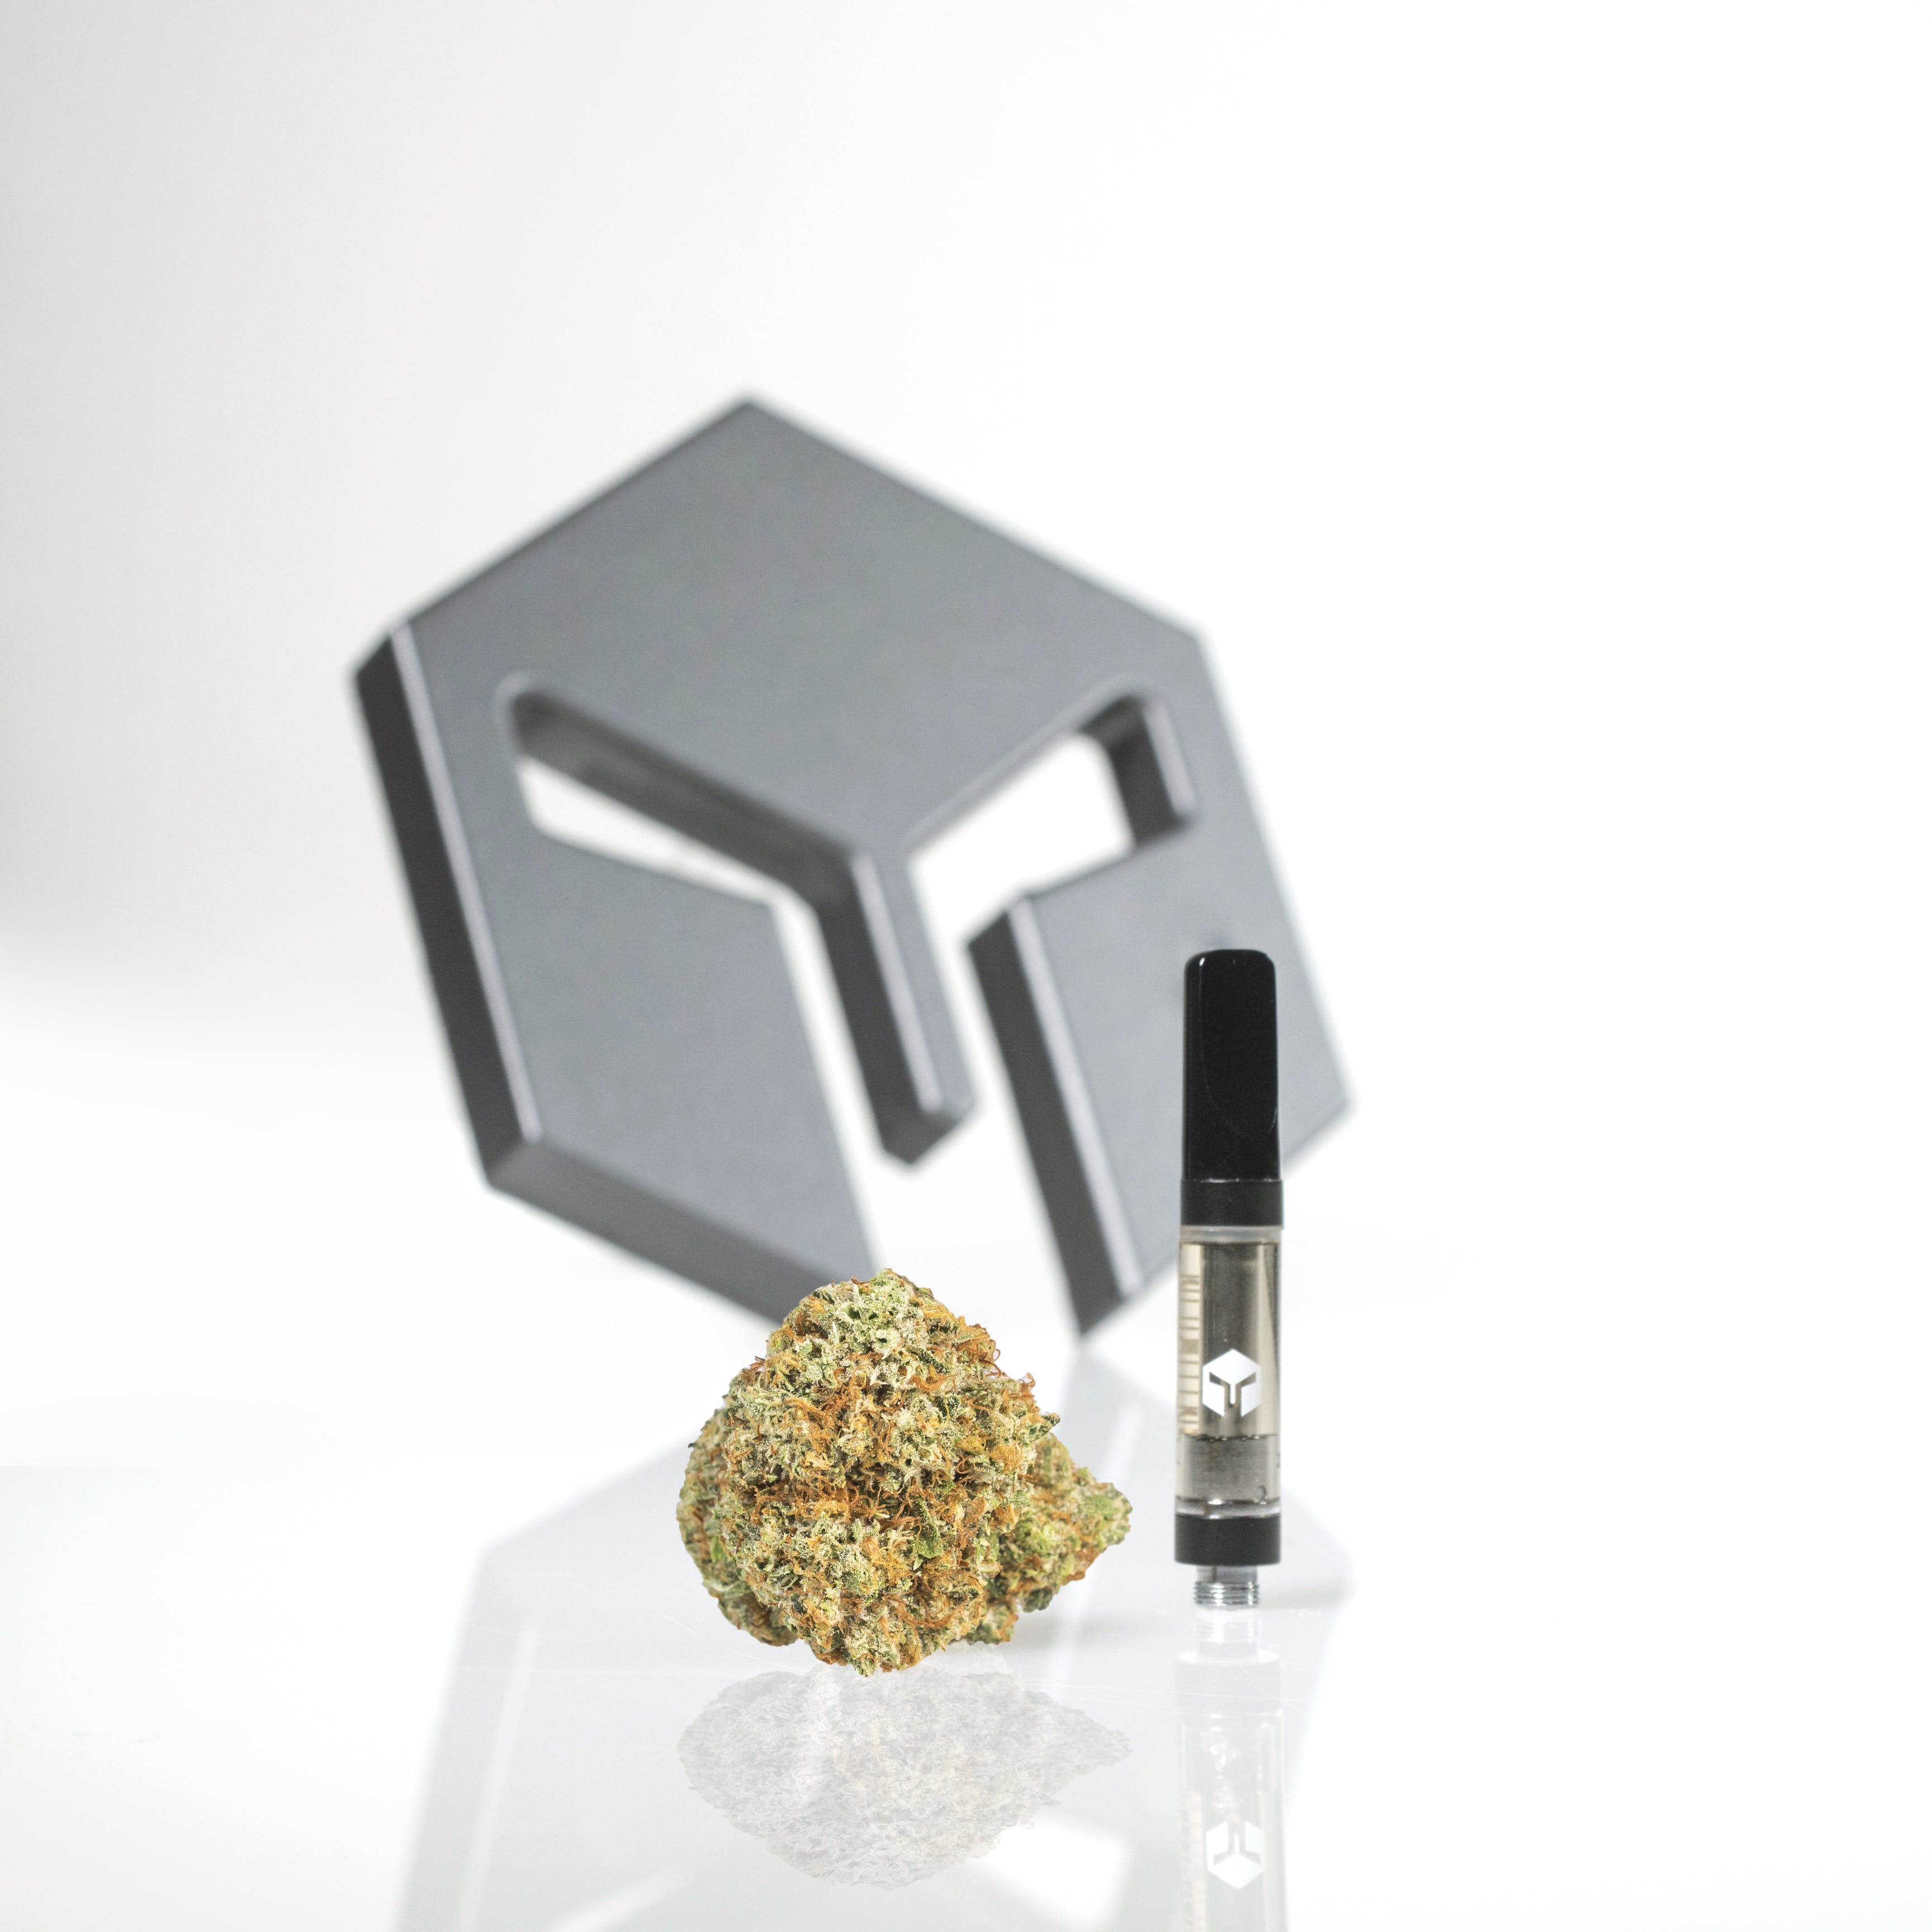 marijuana-dispensaries-cathedral-city-care-collective-north-in-cathedral-city-juno-a-c2-80-c2-9cessence-of-thin-minta-c2-80-c2-9d